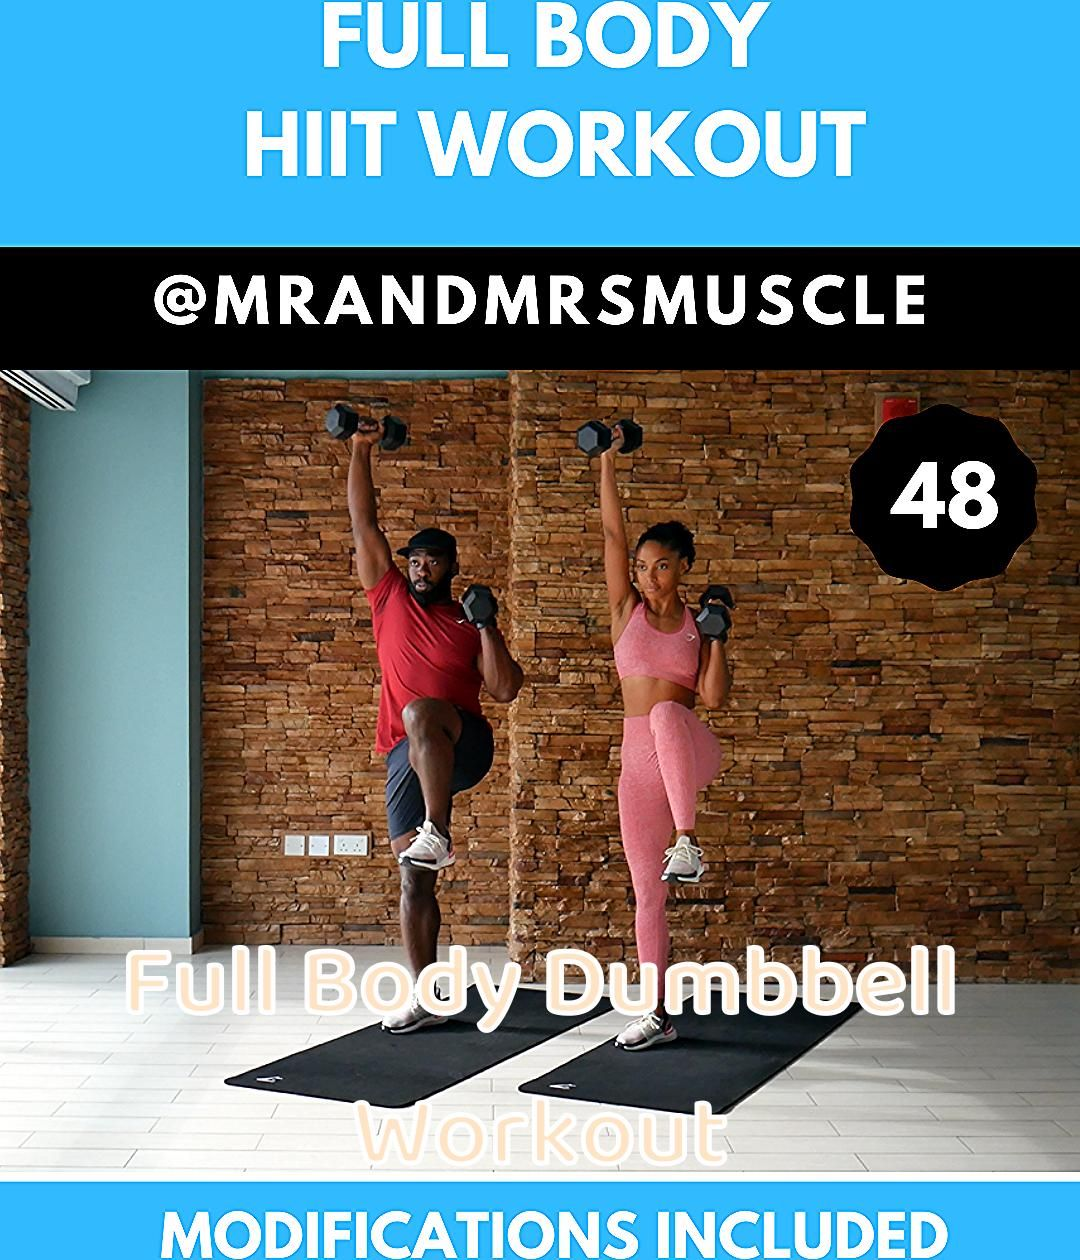 Full body dumbell exercise to tone flabby arms and build muscle in your lower body. #fullbodyworkout...